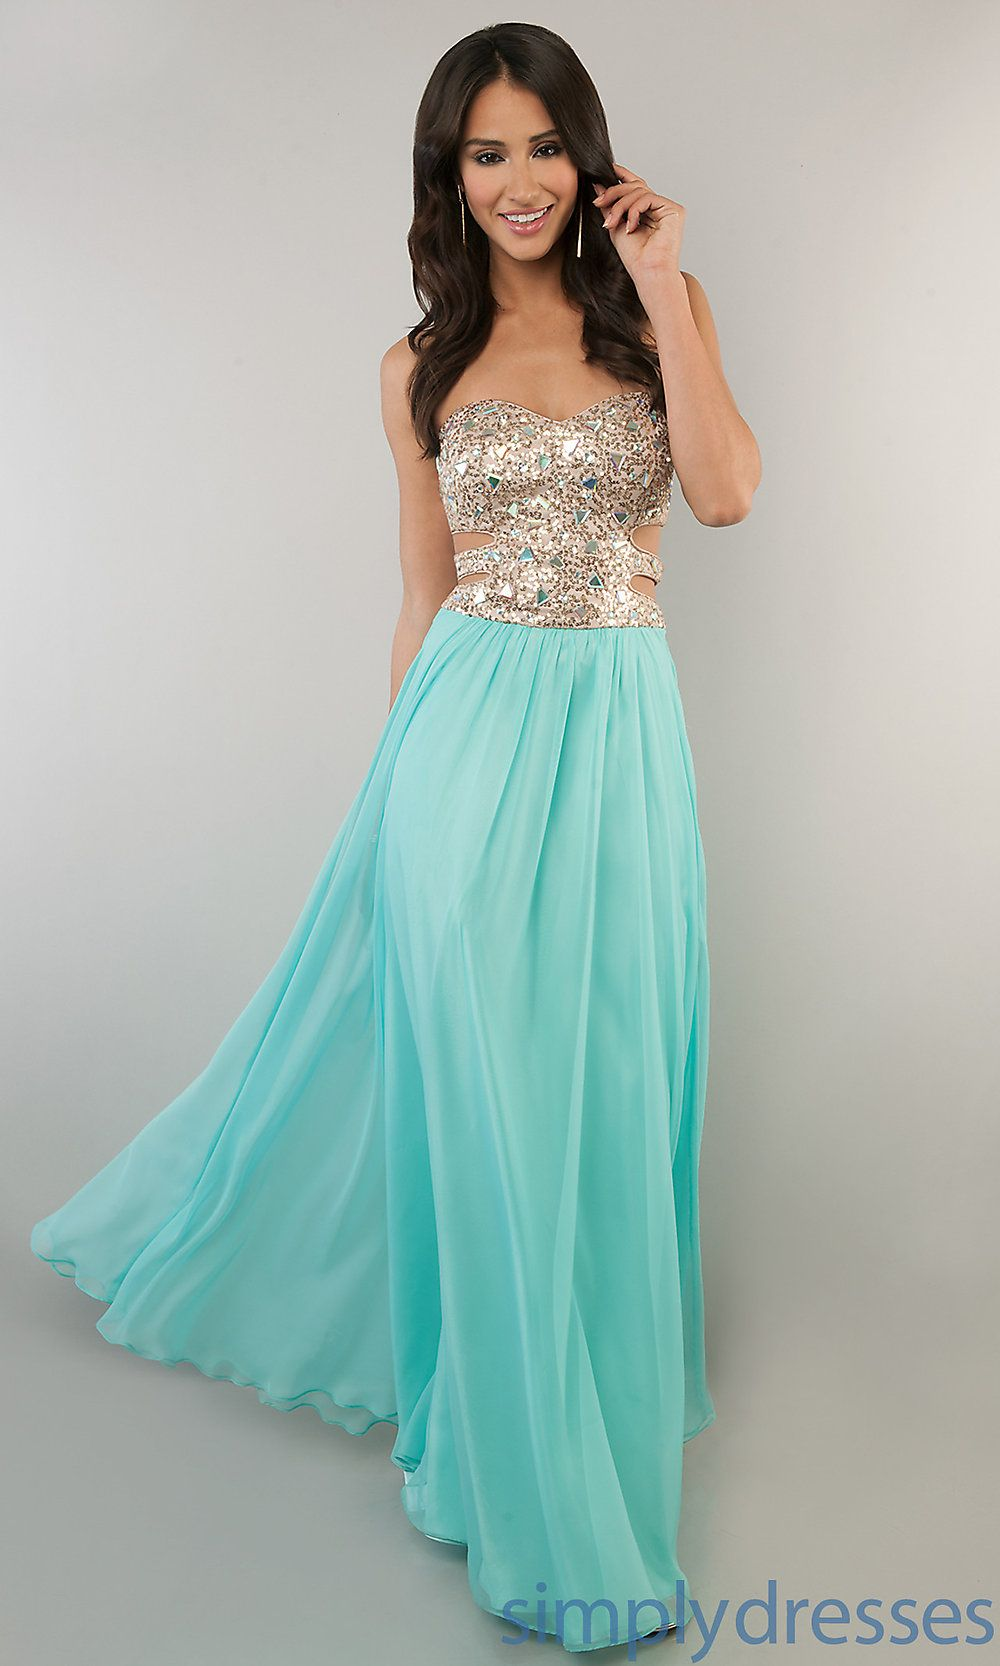 Simply Dresses Prom Photo Album - The Fashions Of Paradise